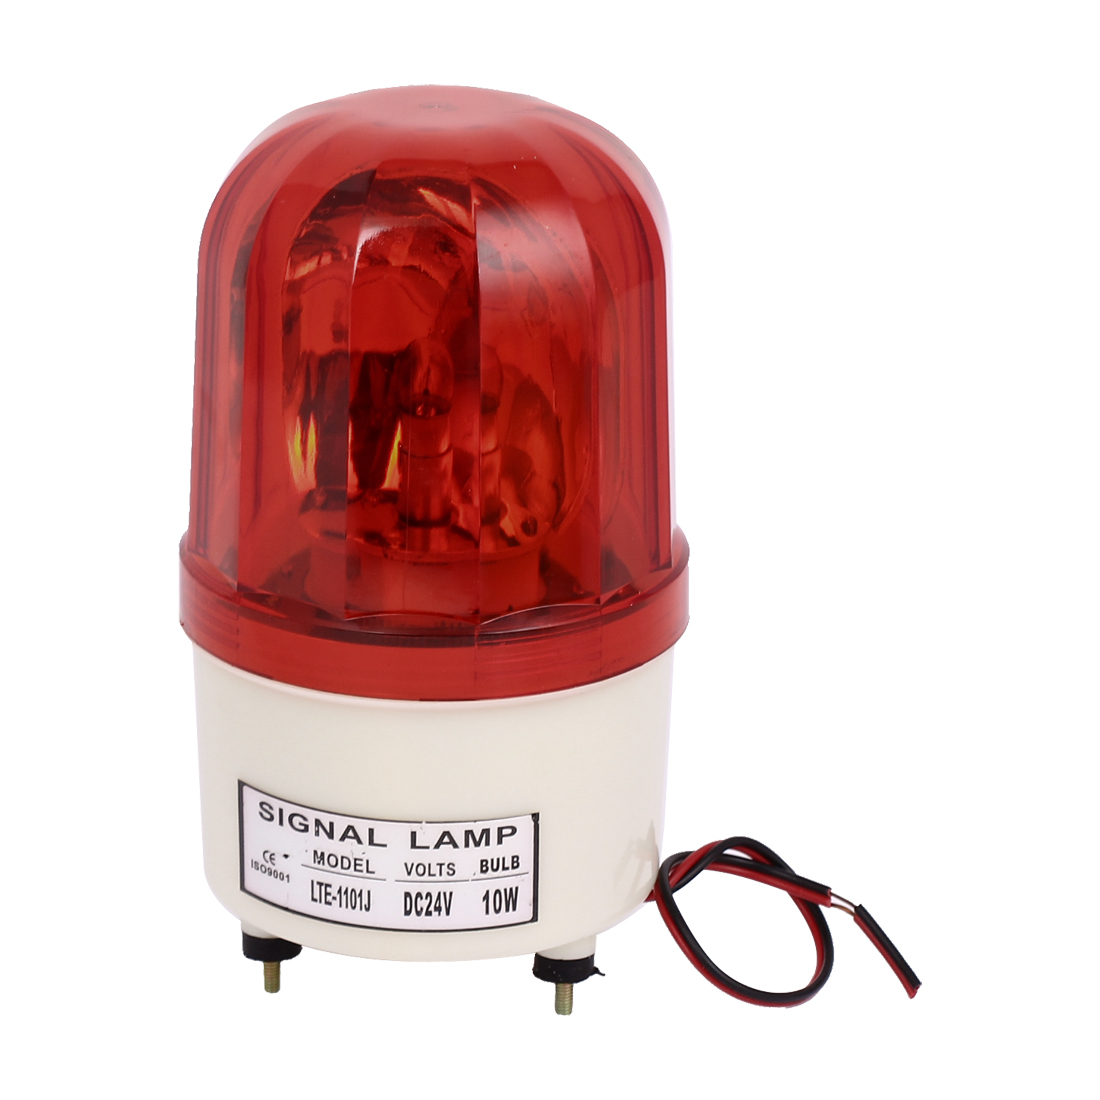 DC 24V 10W Industrial Signal Safety Rotary LED Flash Strobe Warning Indicator Light Lamp Red